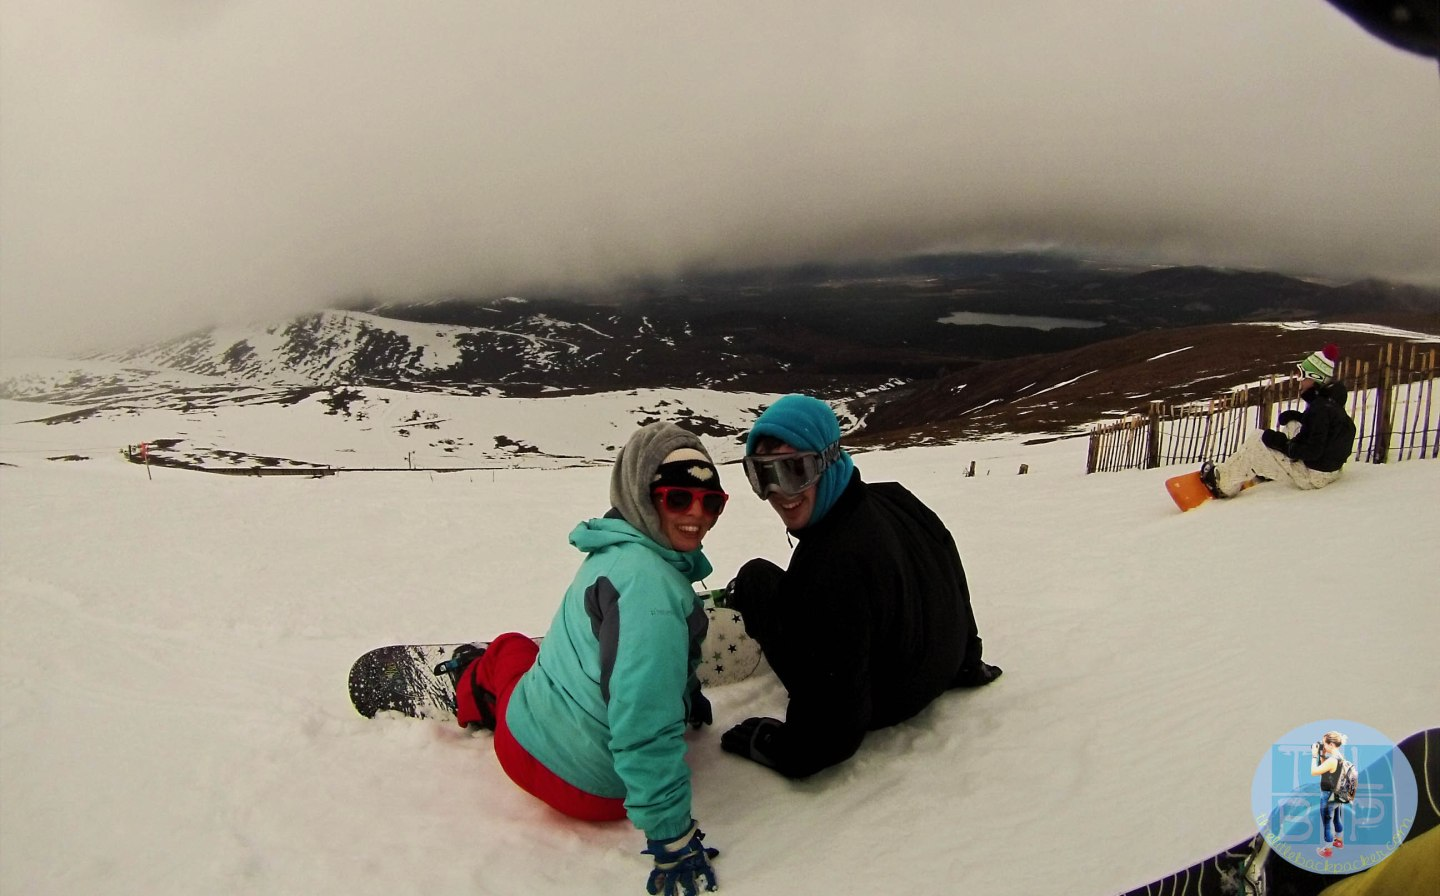 Snow Boarding In Scotland – Accessible, Affordable and Great For Beginners